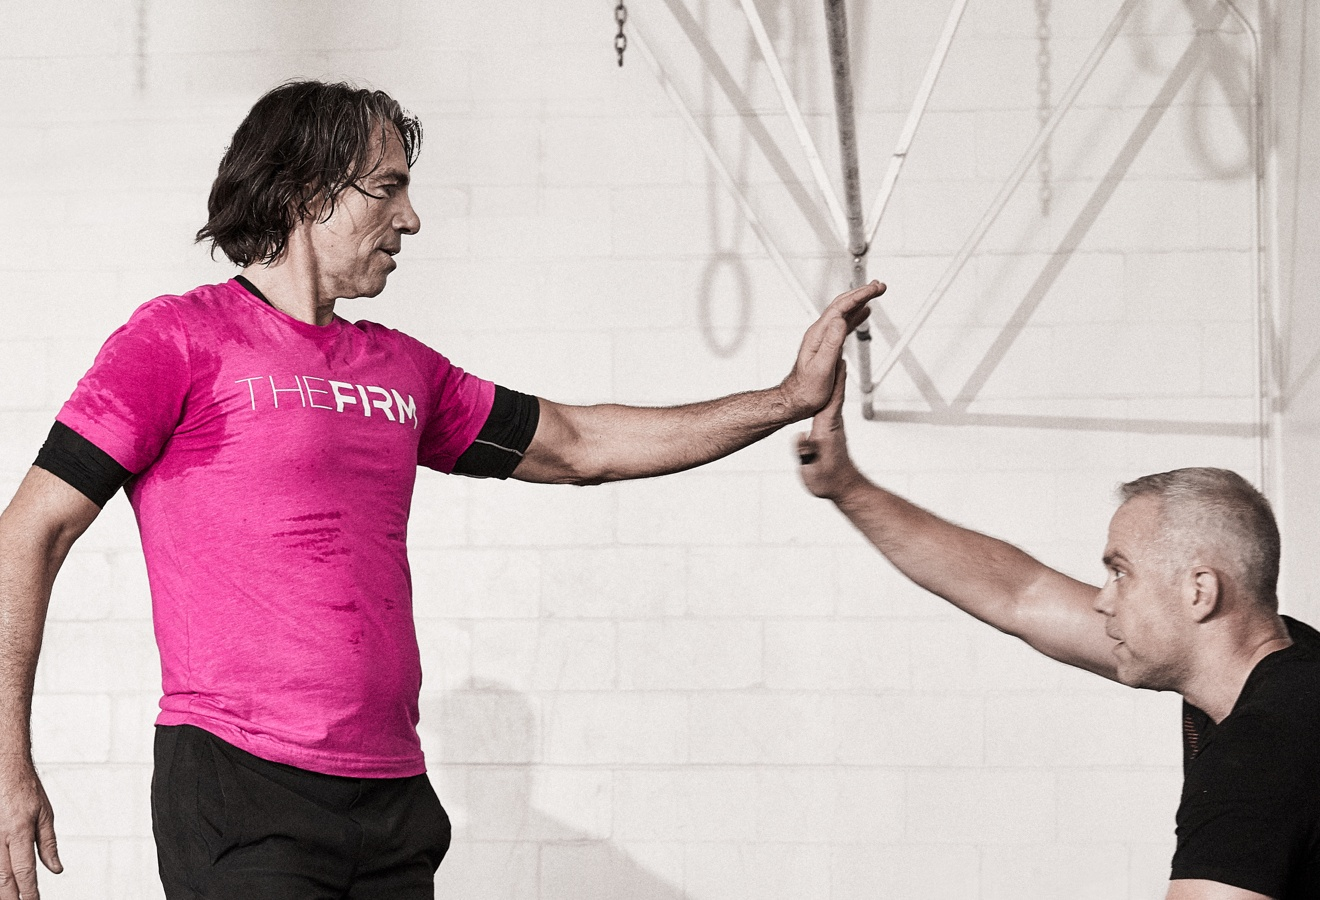 Instructor Jim S. encourages a personal training client